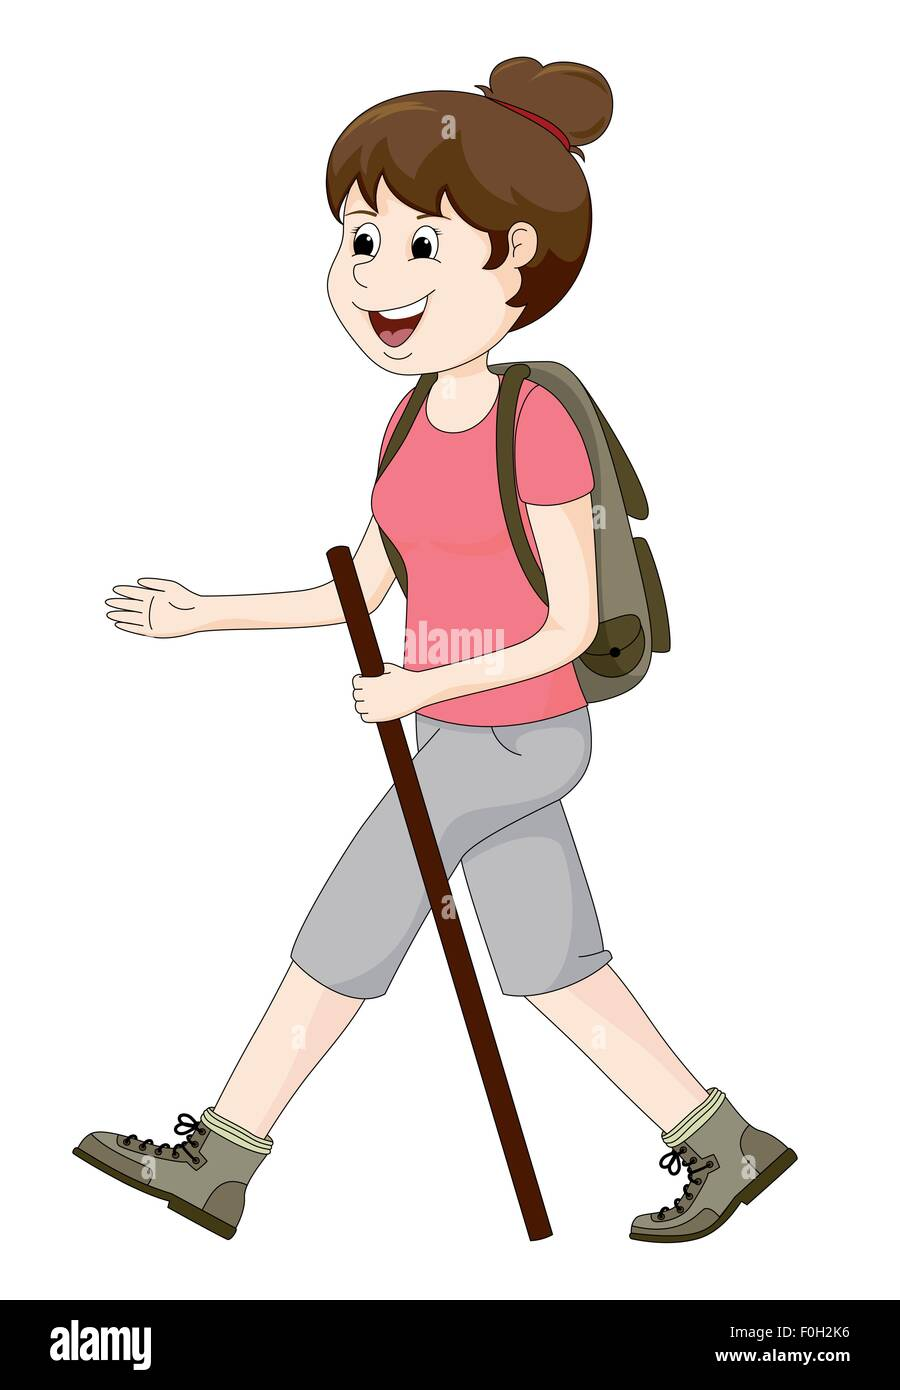 Woman hiking - Stock Image